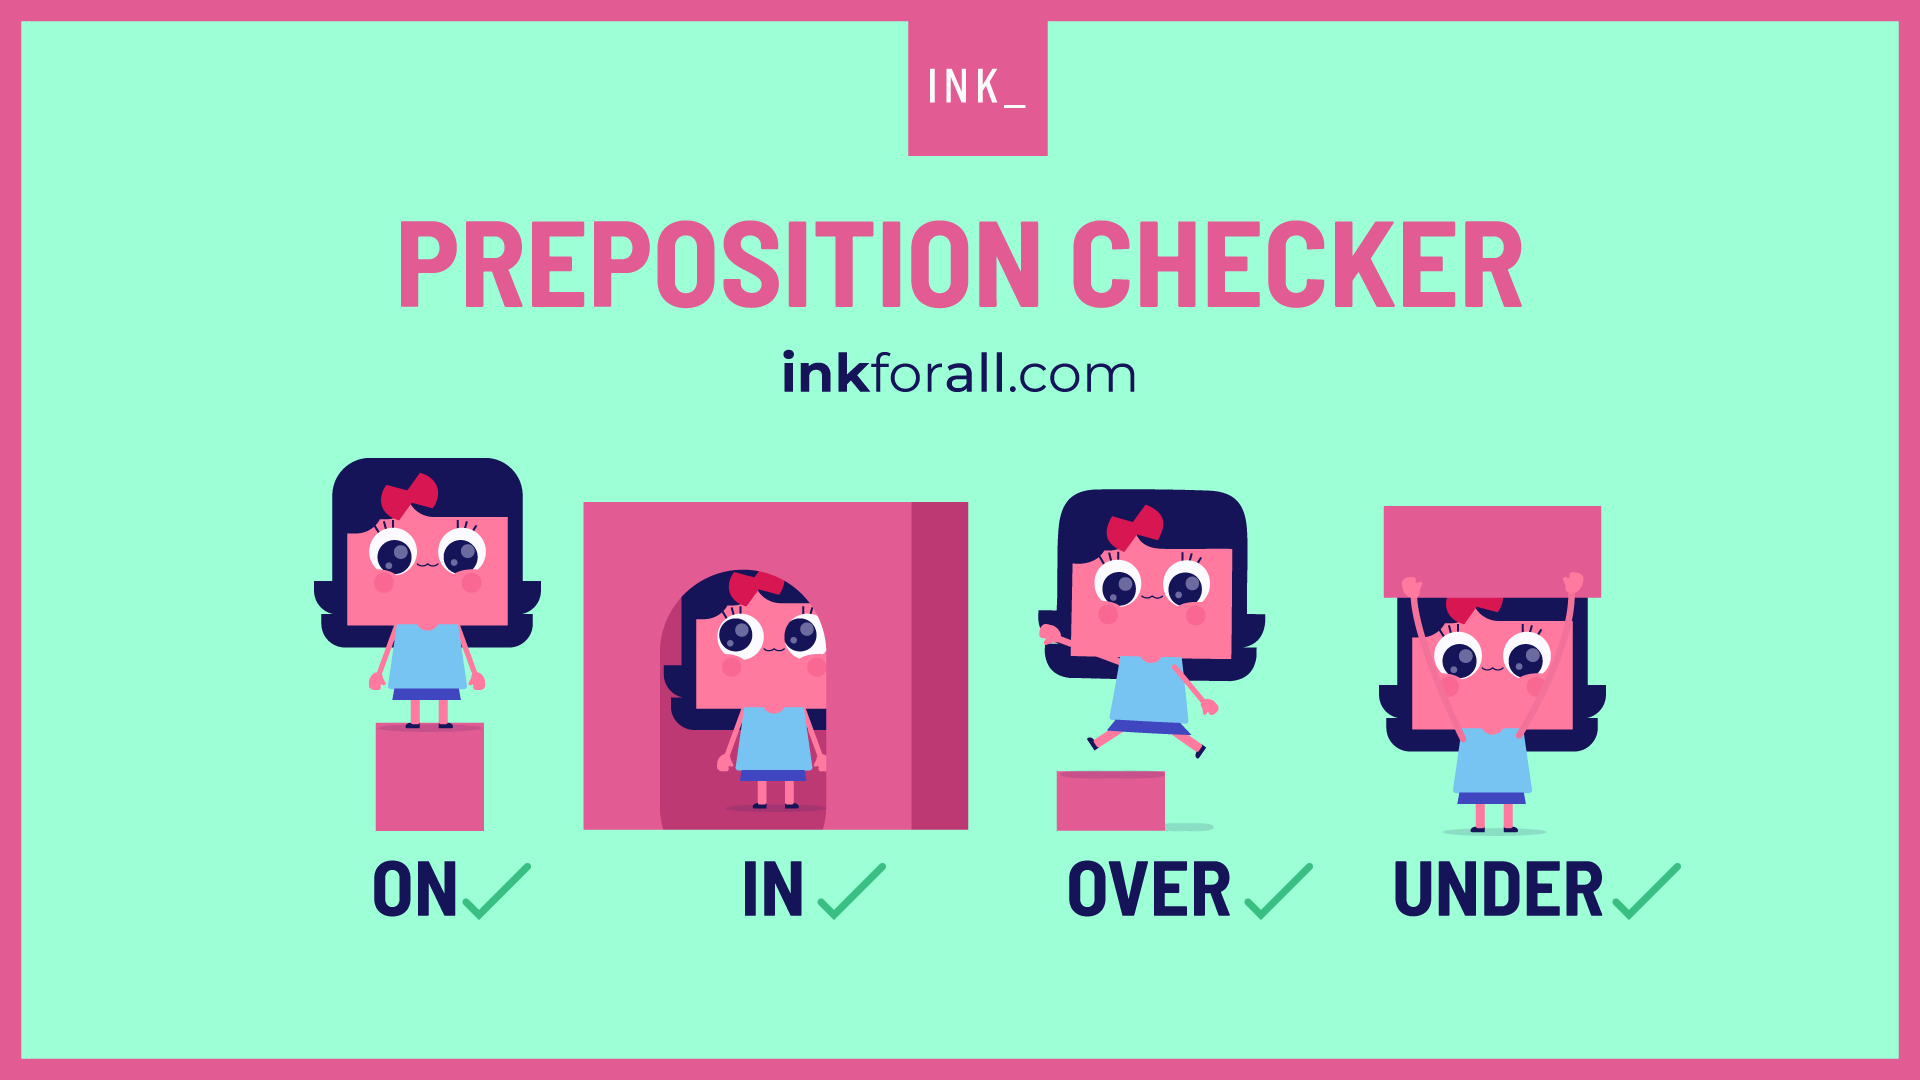 Preposition checker